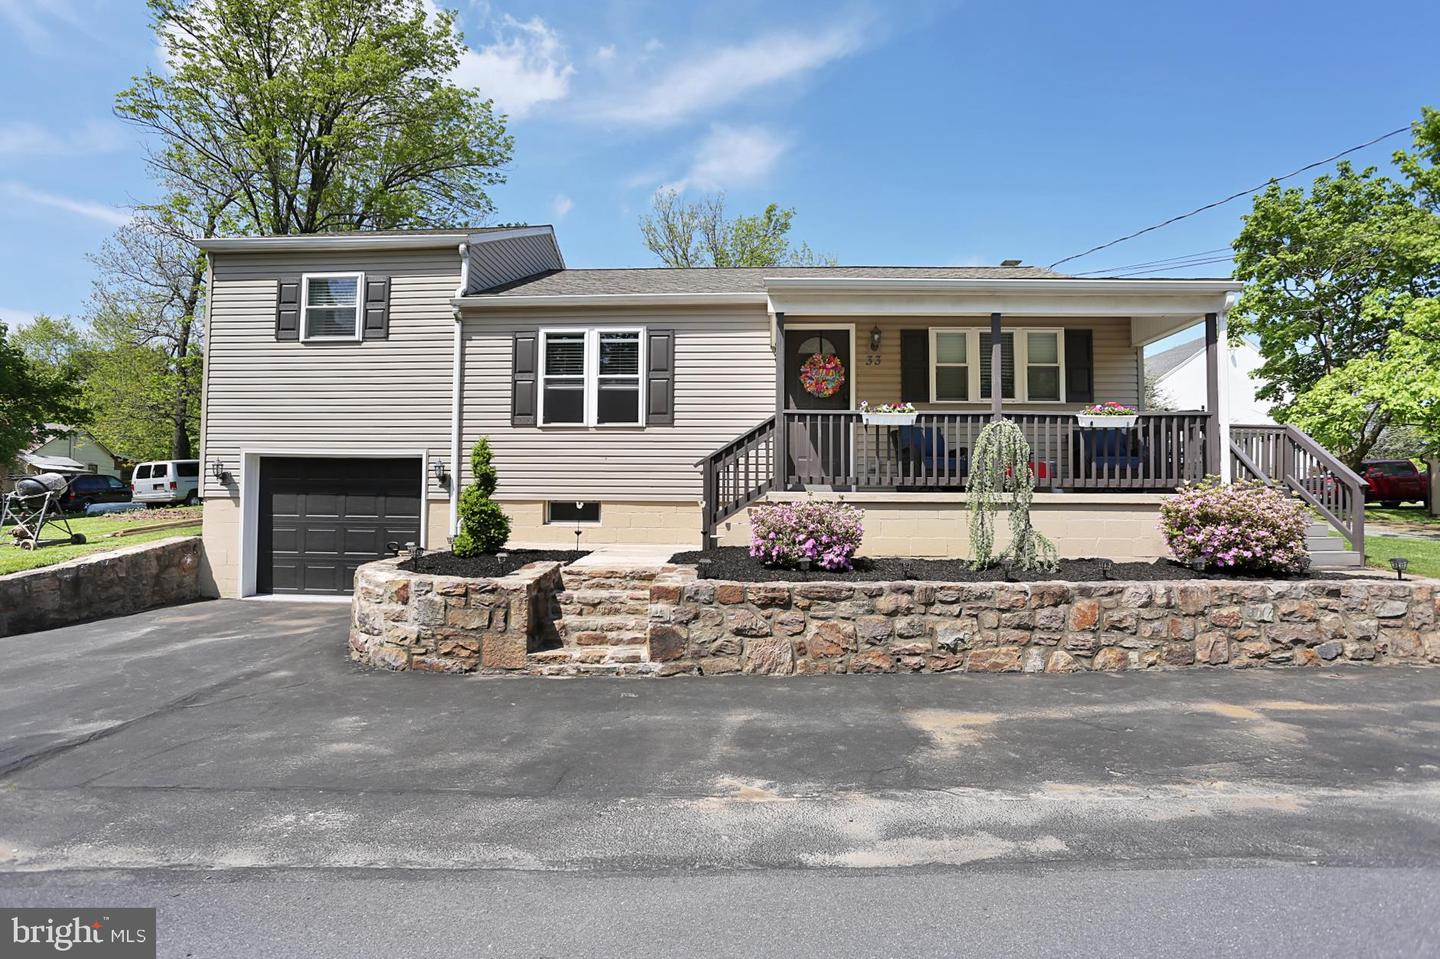 Photo of 33 Miller Avenue, Temple PA